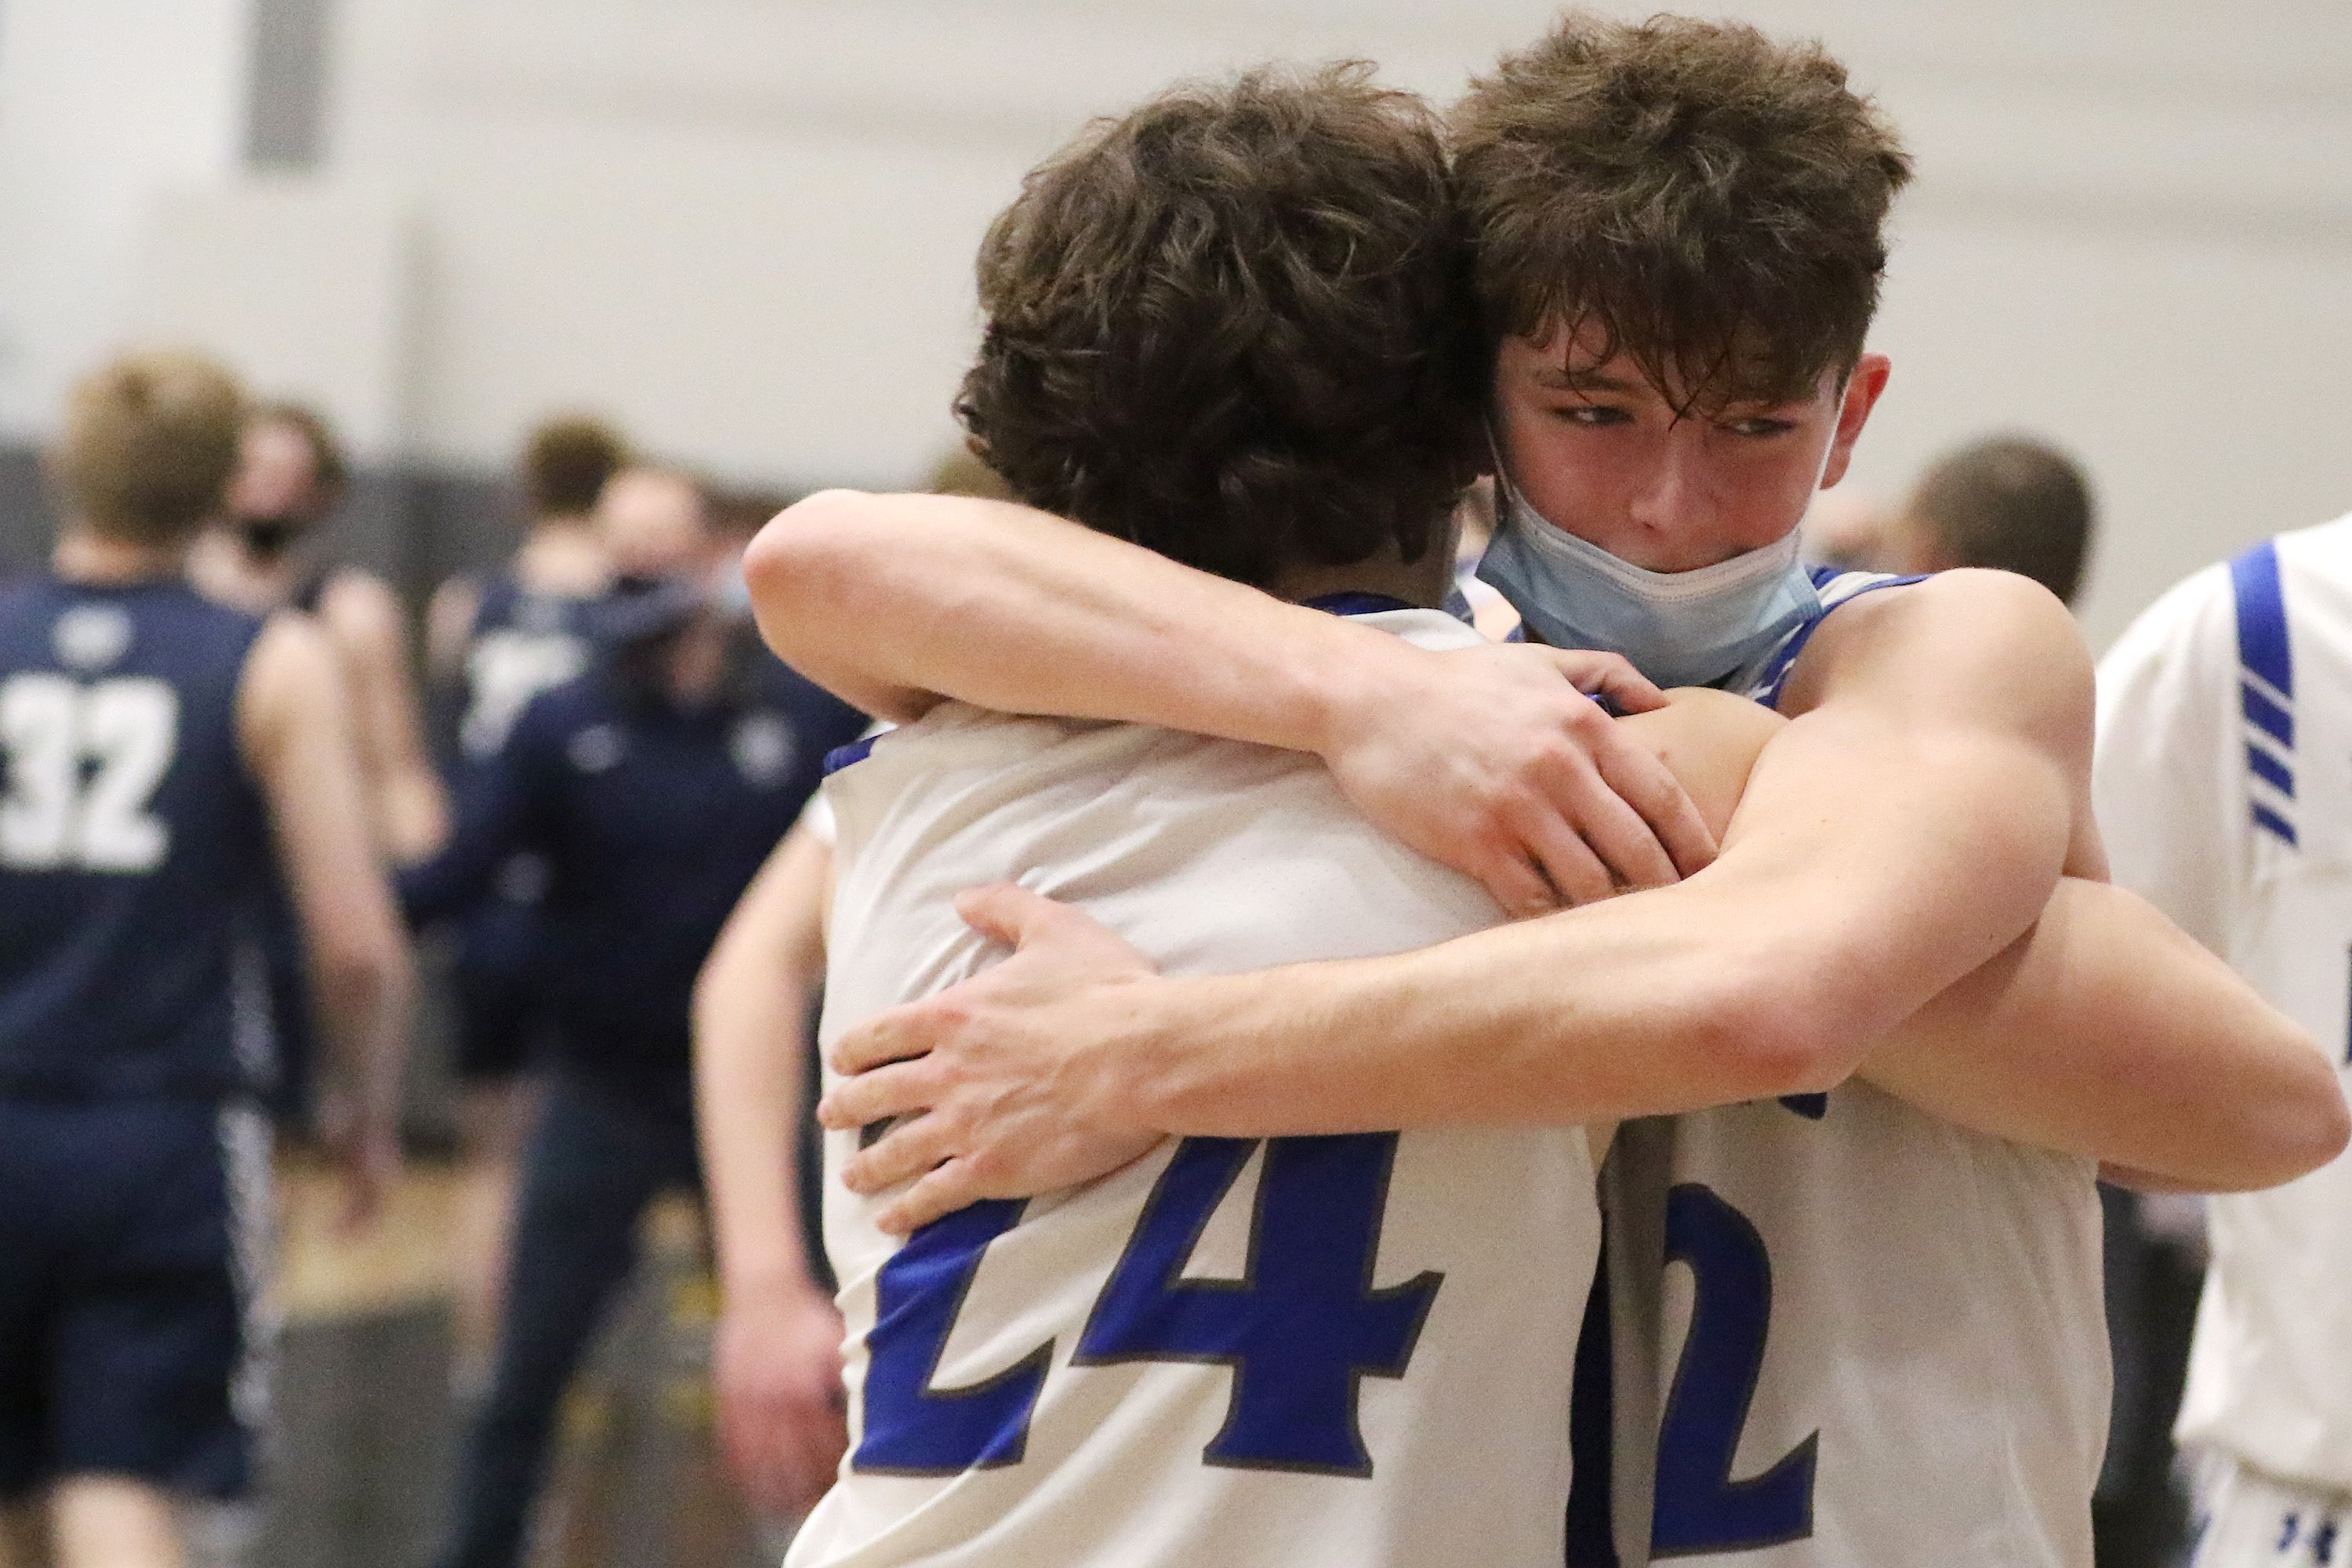 Burlington Central's Steven Langtim, facing, hugs teammate Matthew Lemon after coming out of the game late in the fourth quarter Saturday.